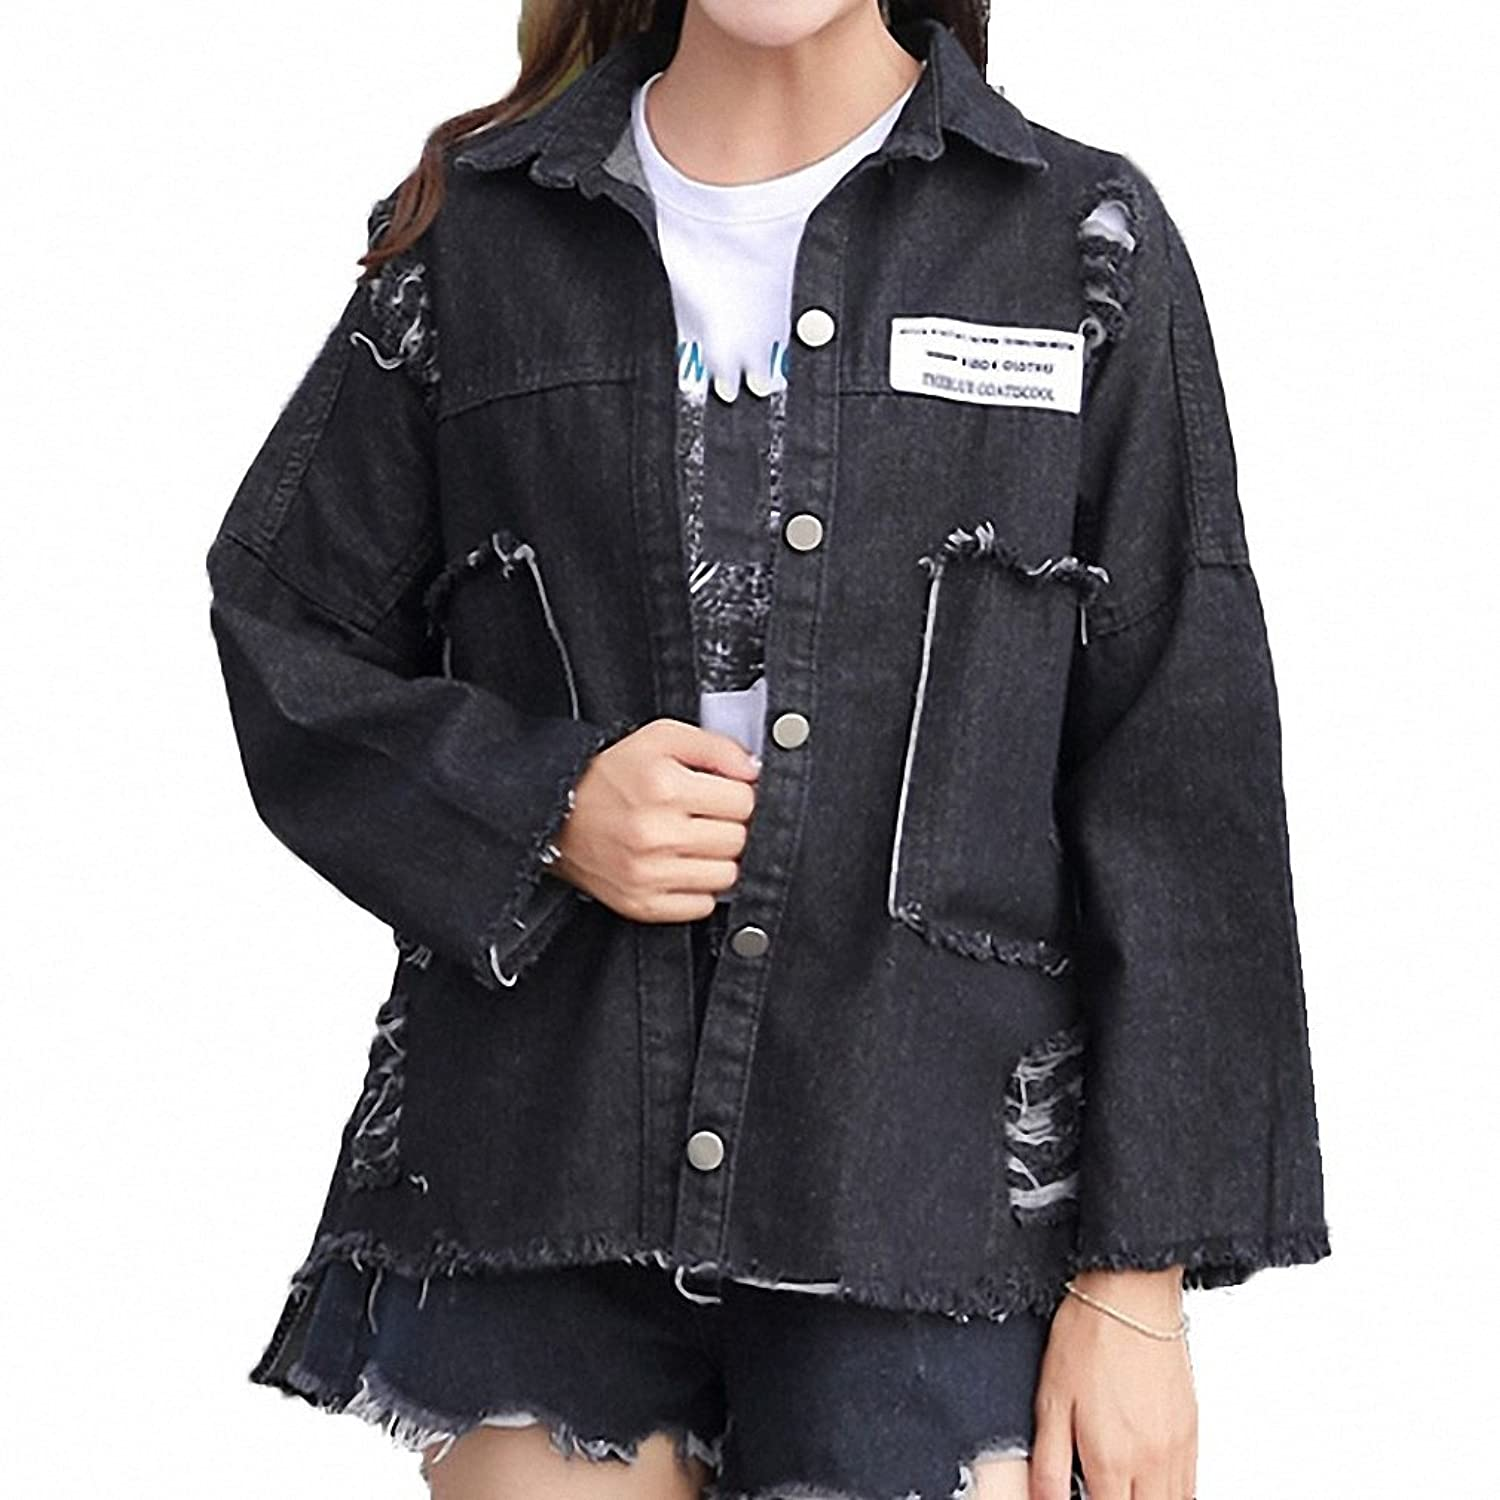 Huiwa Womens Denim Jacket Oversized Jeans Jacket Patch Designs Ripped Denim Coat at Amazon Womens Coats Shop